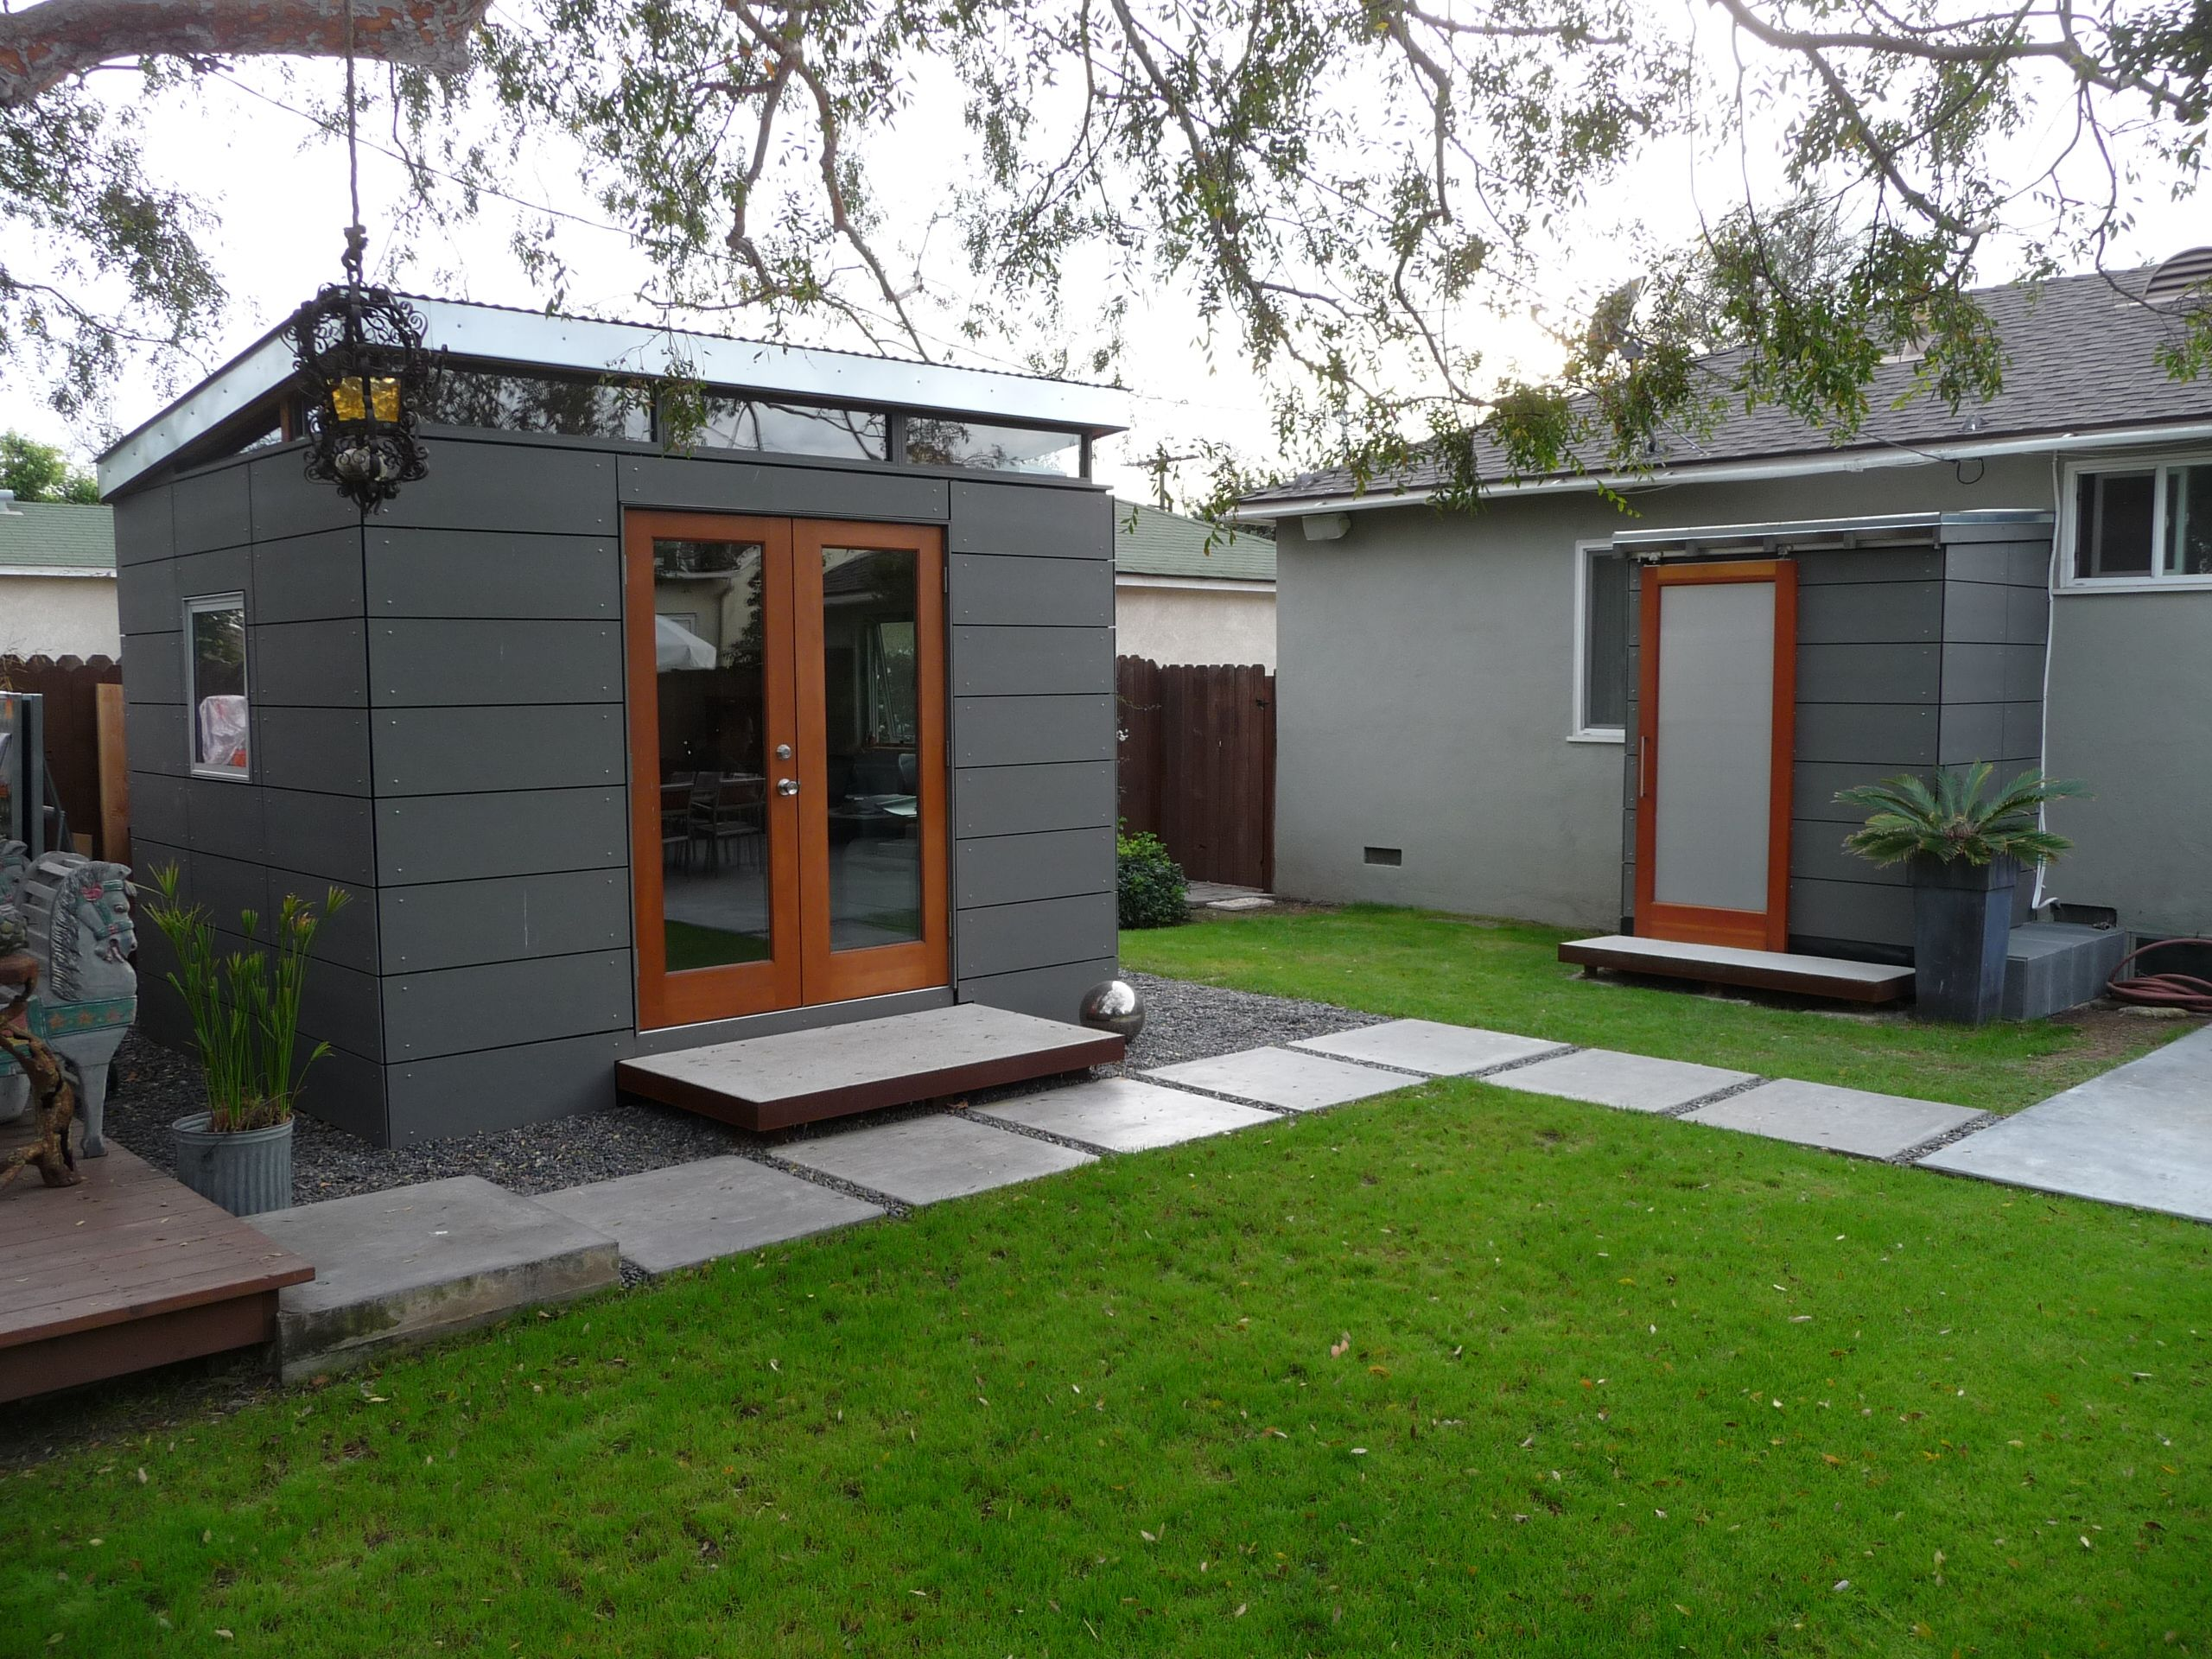 Contemporary Backyard Studios : ModernShed garden studios!  Compact  Small (houses ,cottages ,tra